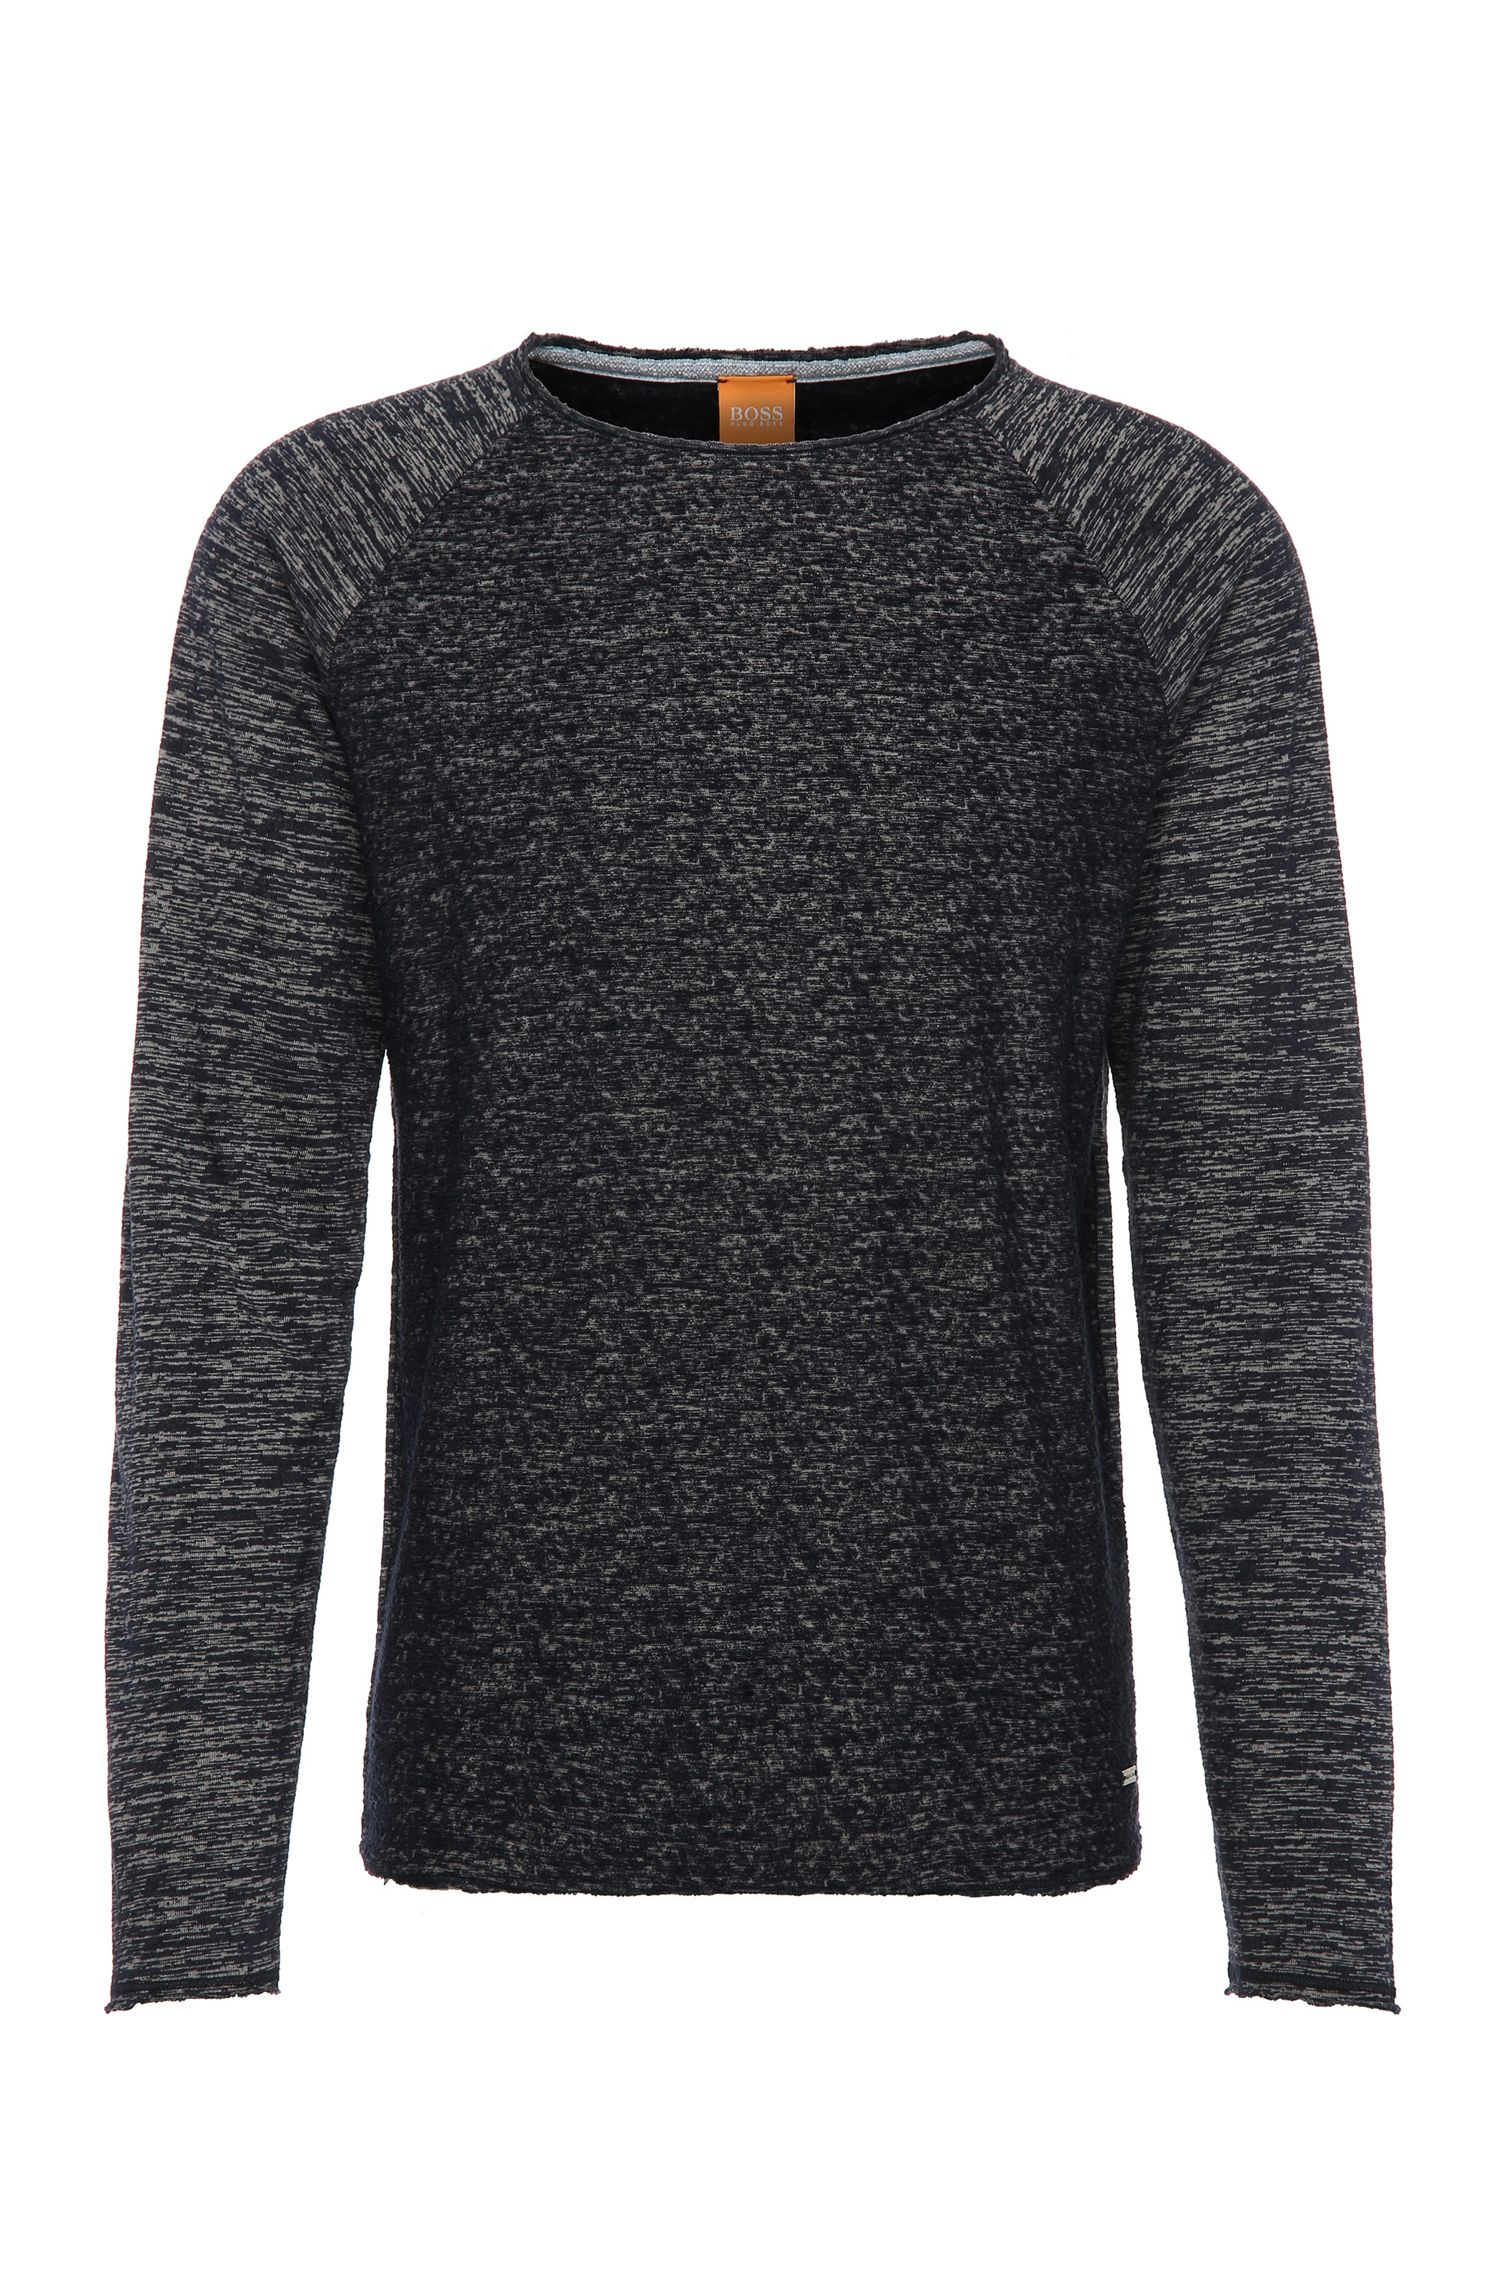 Relaxed-fit sweatshirt in cotton blend: 'Welles'